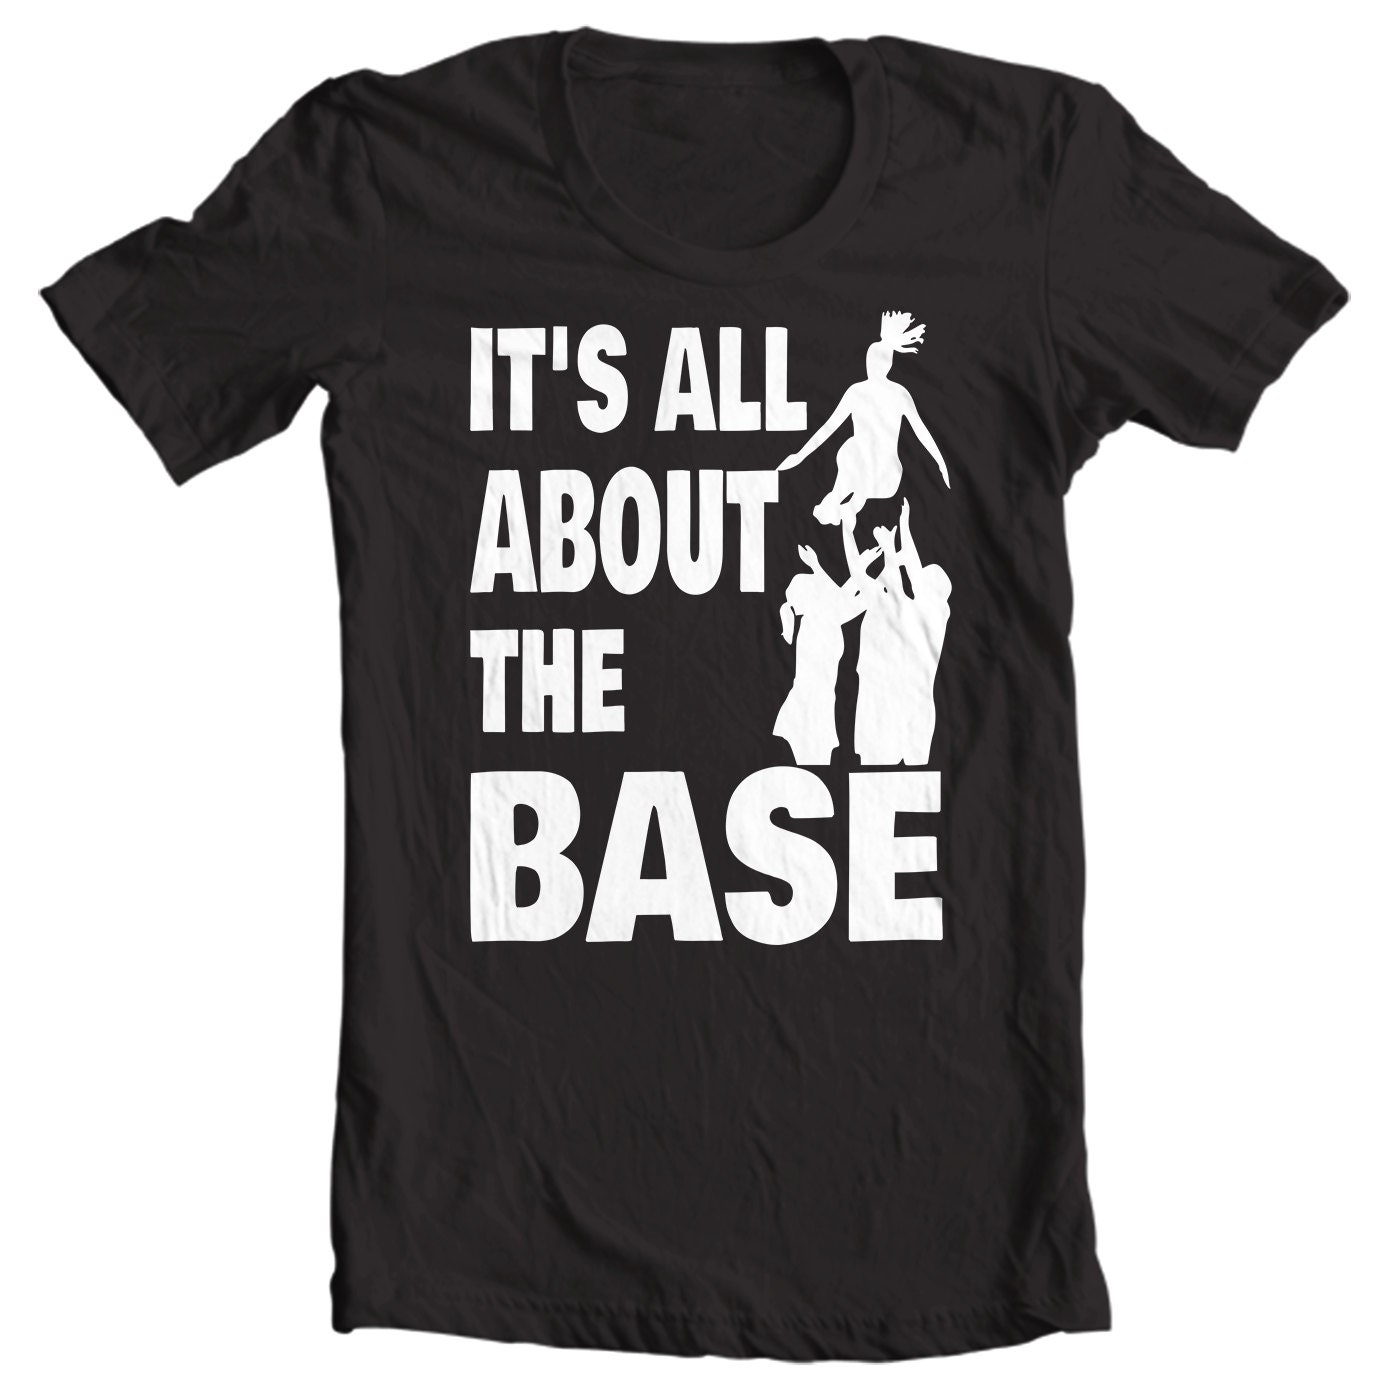 Cheer Life - It's All About The Base Girls Shirt